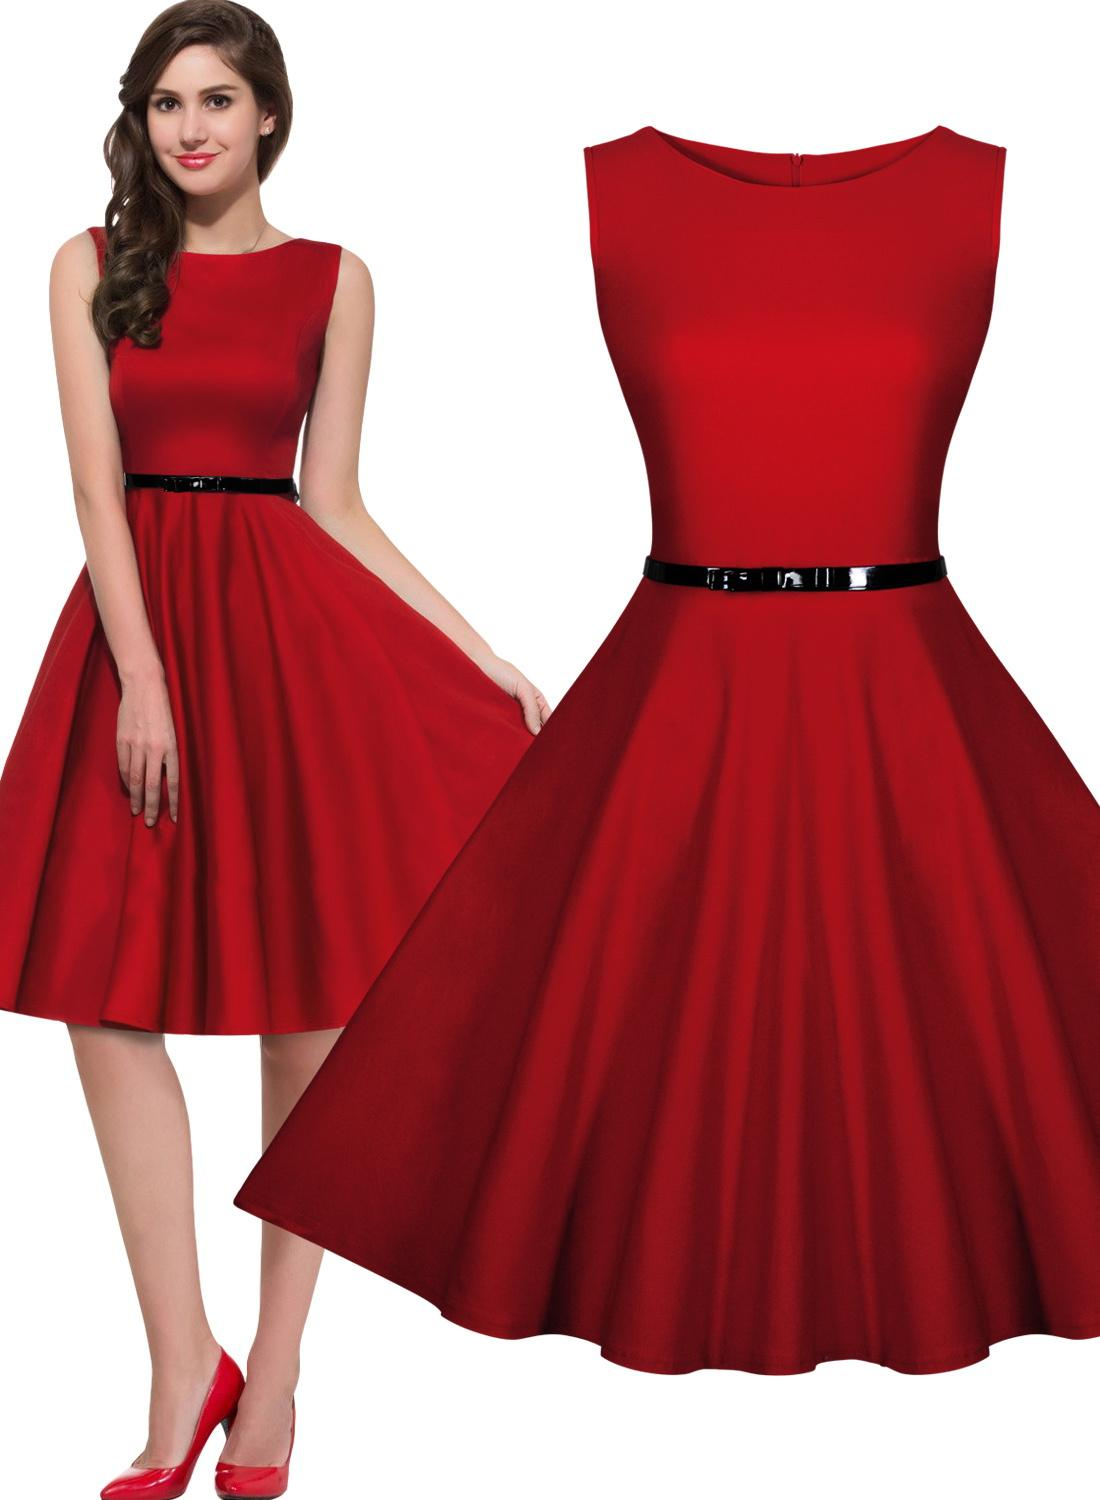 Womens 1950s Rockabilly Vintage Evening Party Dresses Swing Skater